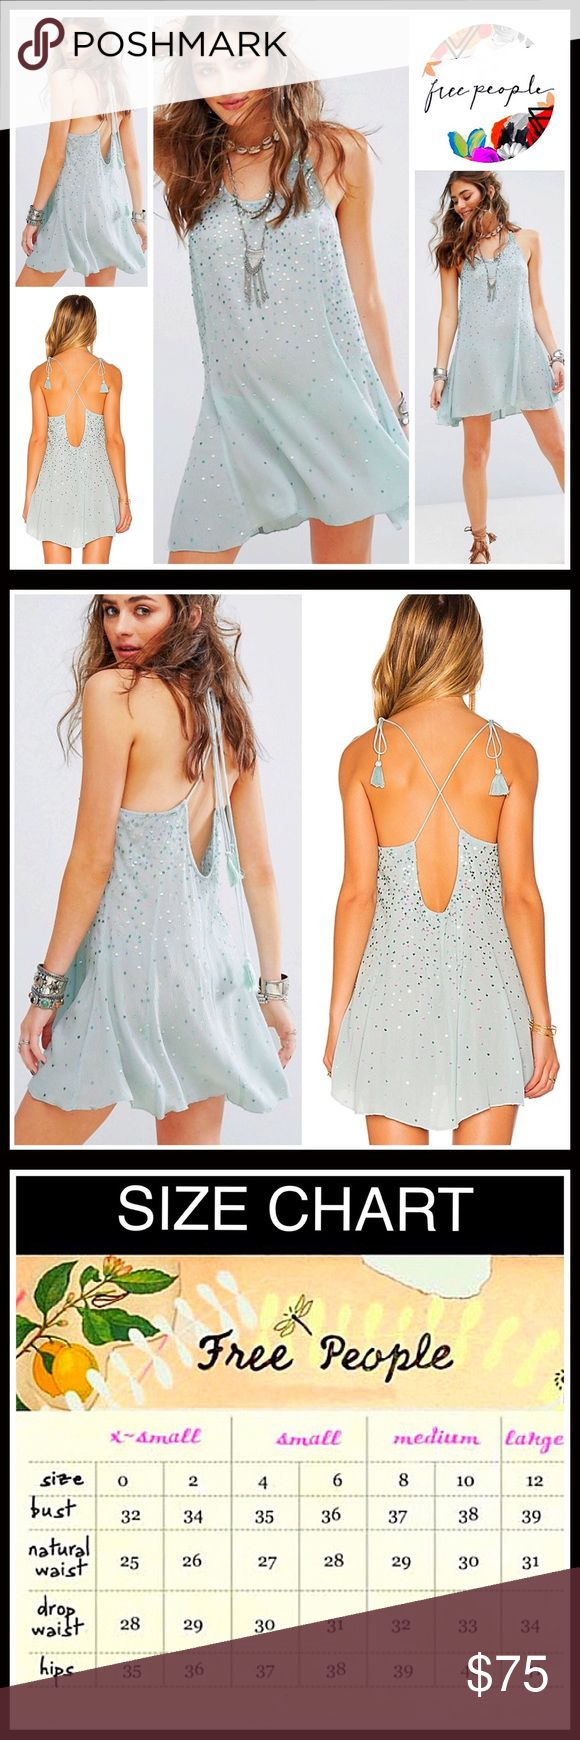 """FREE PEOPLE Embellished Slip Dress 💟NEW WITH TAGS💟  SIZING- S = 4-6, L = 12-14 FREE PEOPLE Embellished Slip Dress  * Crisscross back & thin adjustable straps  * Scoop neck; Tassel fringe details' Semi backless / open back style  * Slips over head' A relaxed fit   * Approx 30"""" long; A-line cut  * Lightweight fabric; Ideal for spring/summer layering; Partially lined *  Gorgeous embellished sequin detail Fabric-100% viscose; Color- Sky  Search # Vintage like ITEM# 🚫No Trades🚫 ✅ Offers…"""